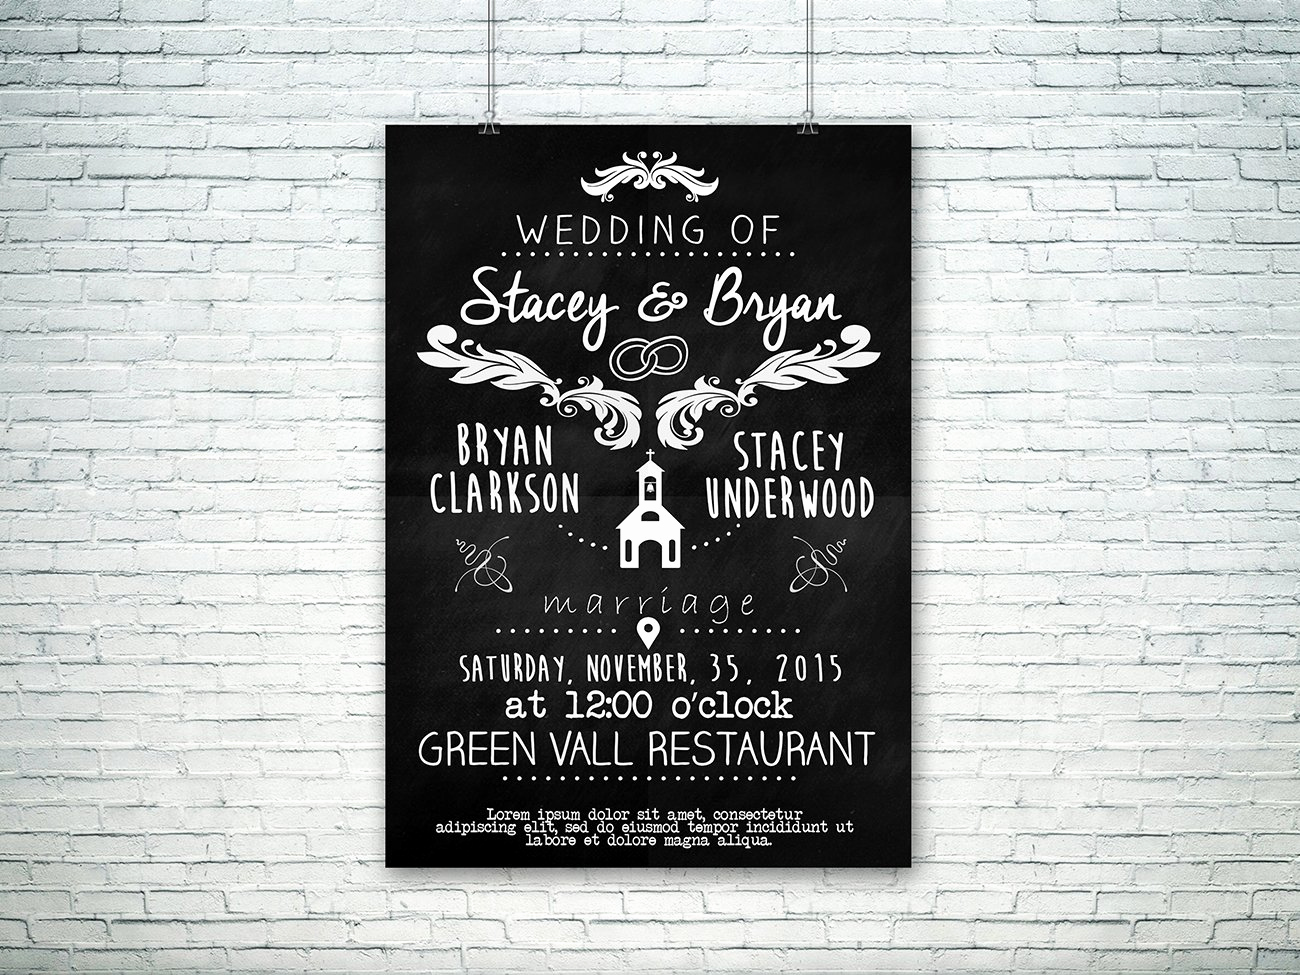 Vintage Wedding Invitation Templates Awesome Vintage Wedding Invitation Template Graphicfy